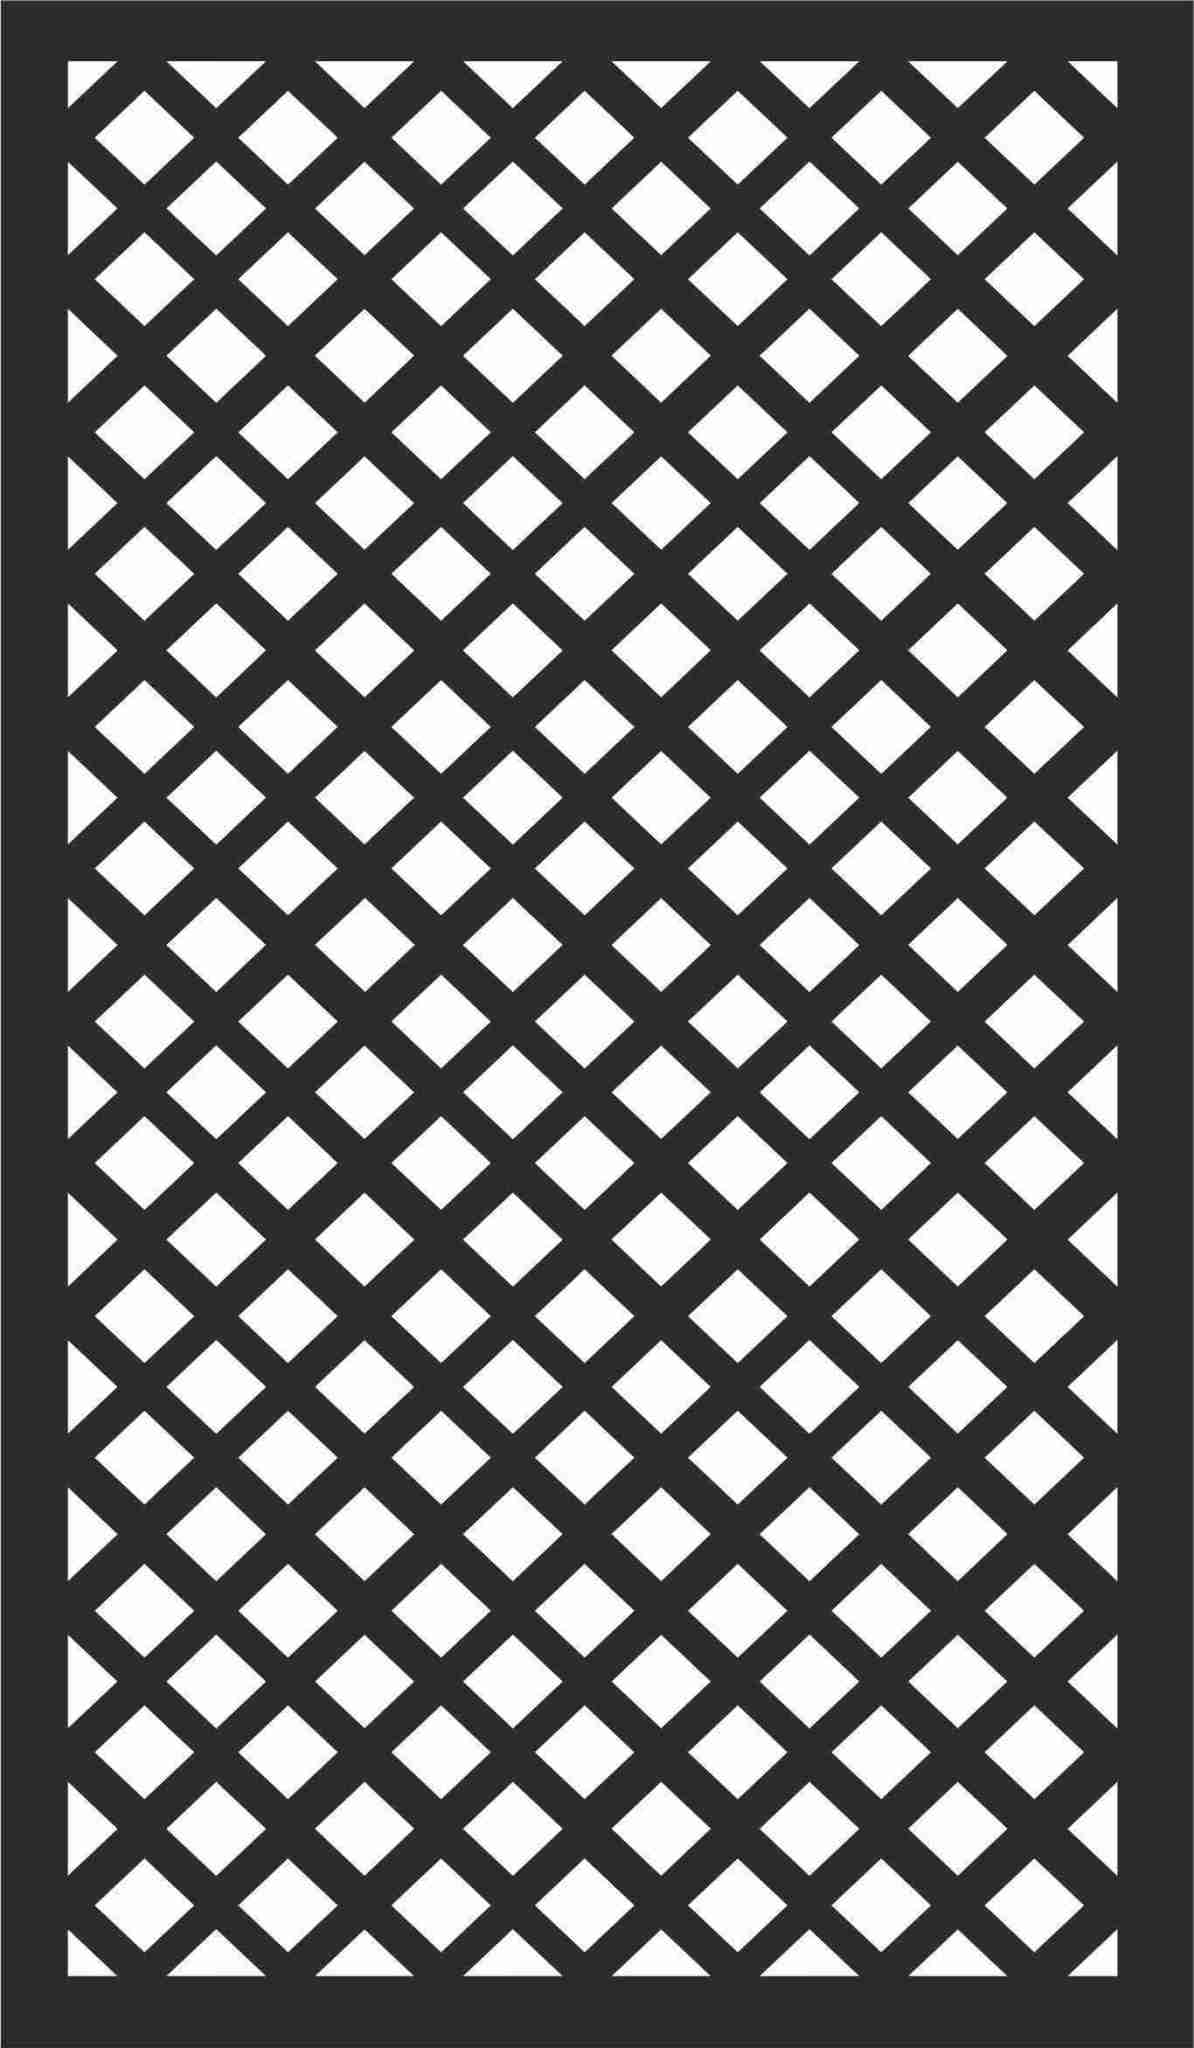 Decorative Screen Patterns For Laser Cutting 108 Free DXF File